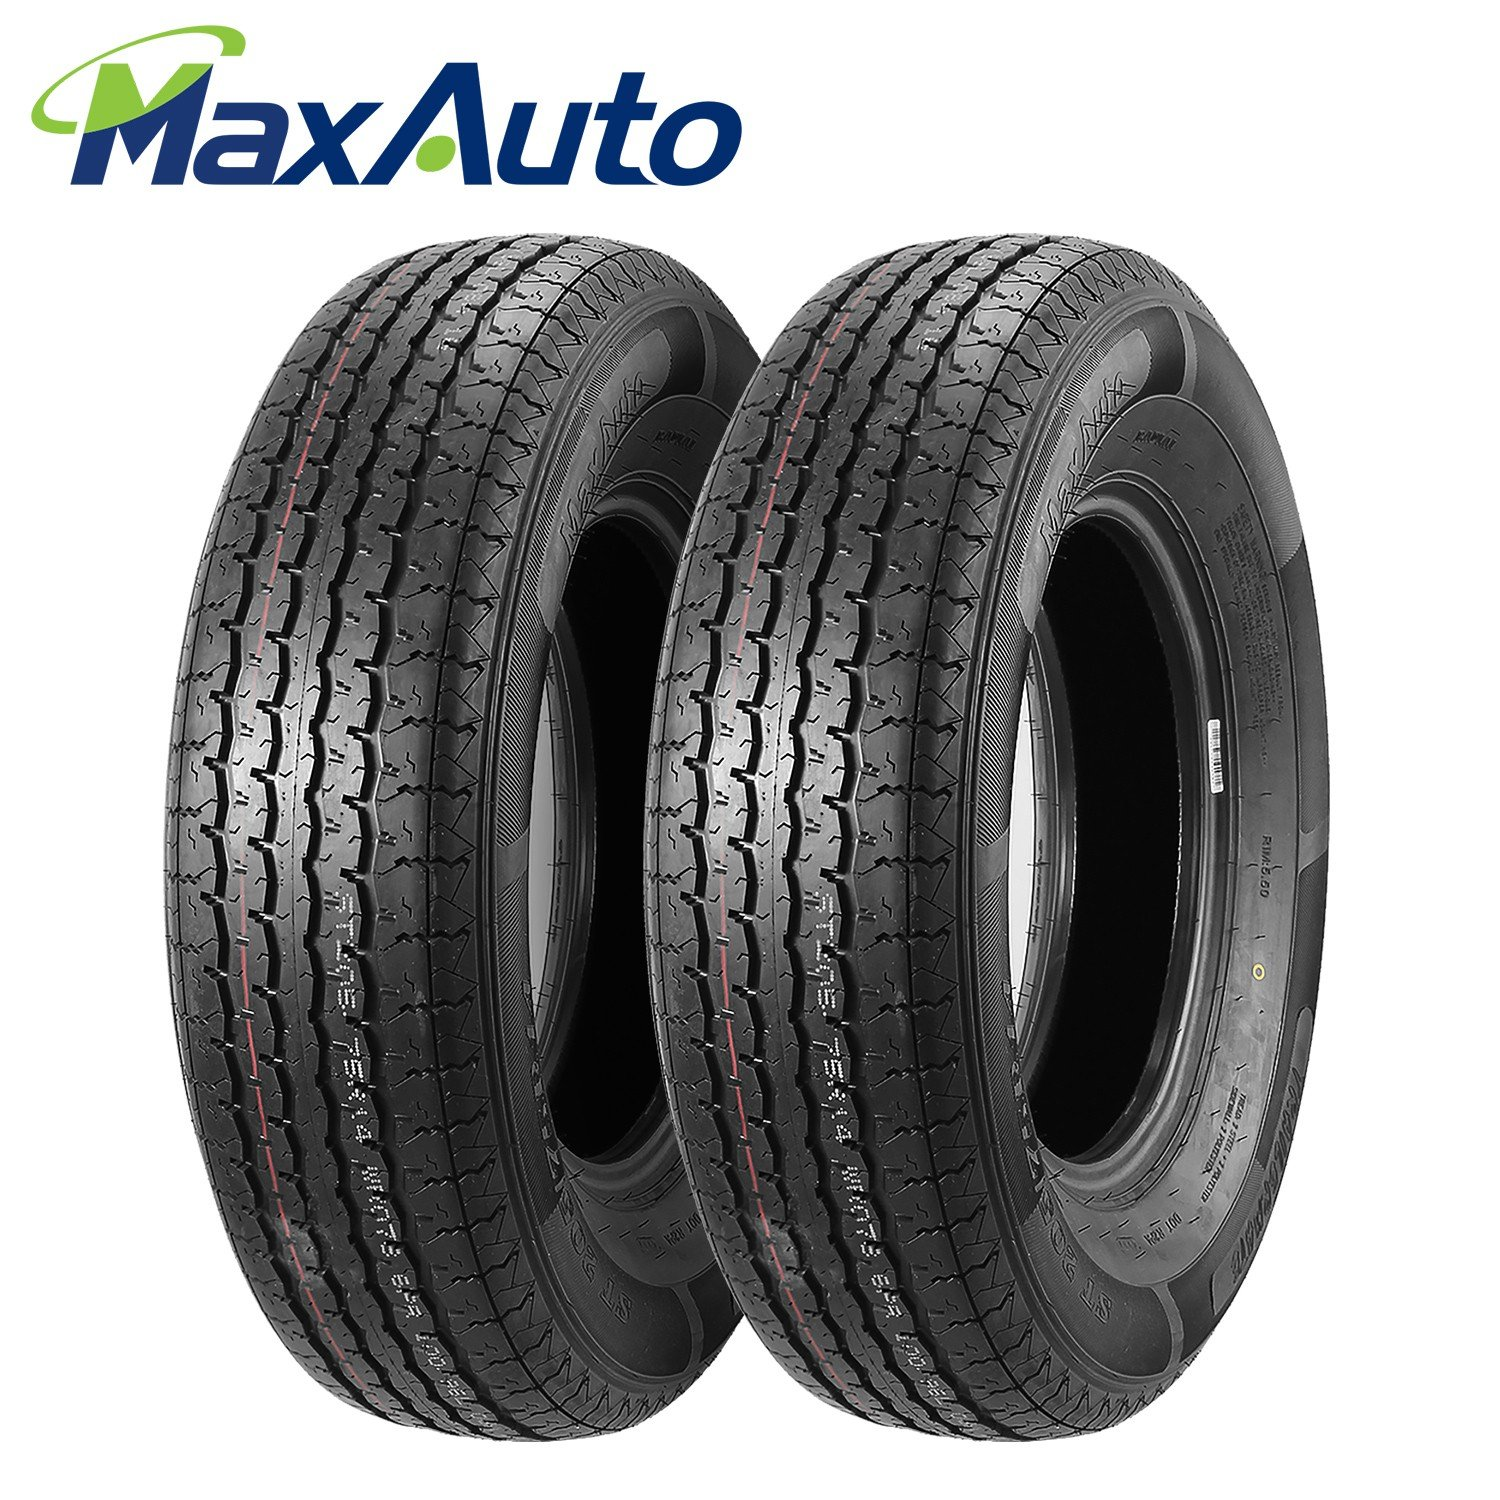 ST205/75R14 Load Range D MaxAuto Radial Trailer Tires ST205/75R-14 8Ply(Pack of 2)